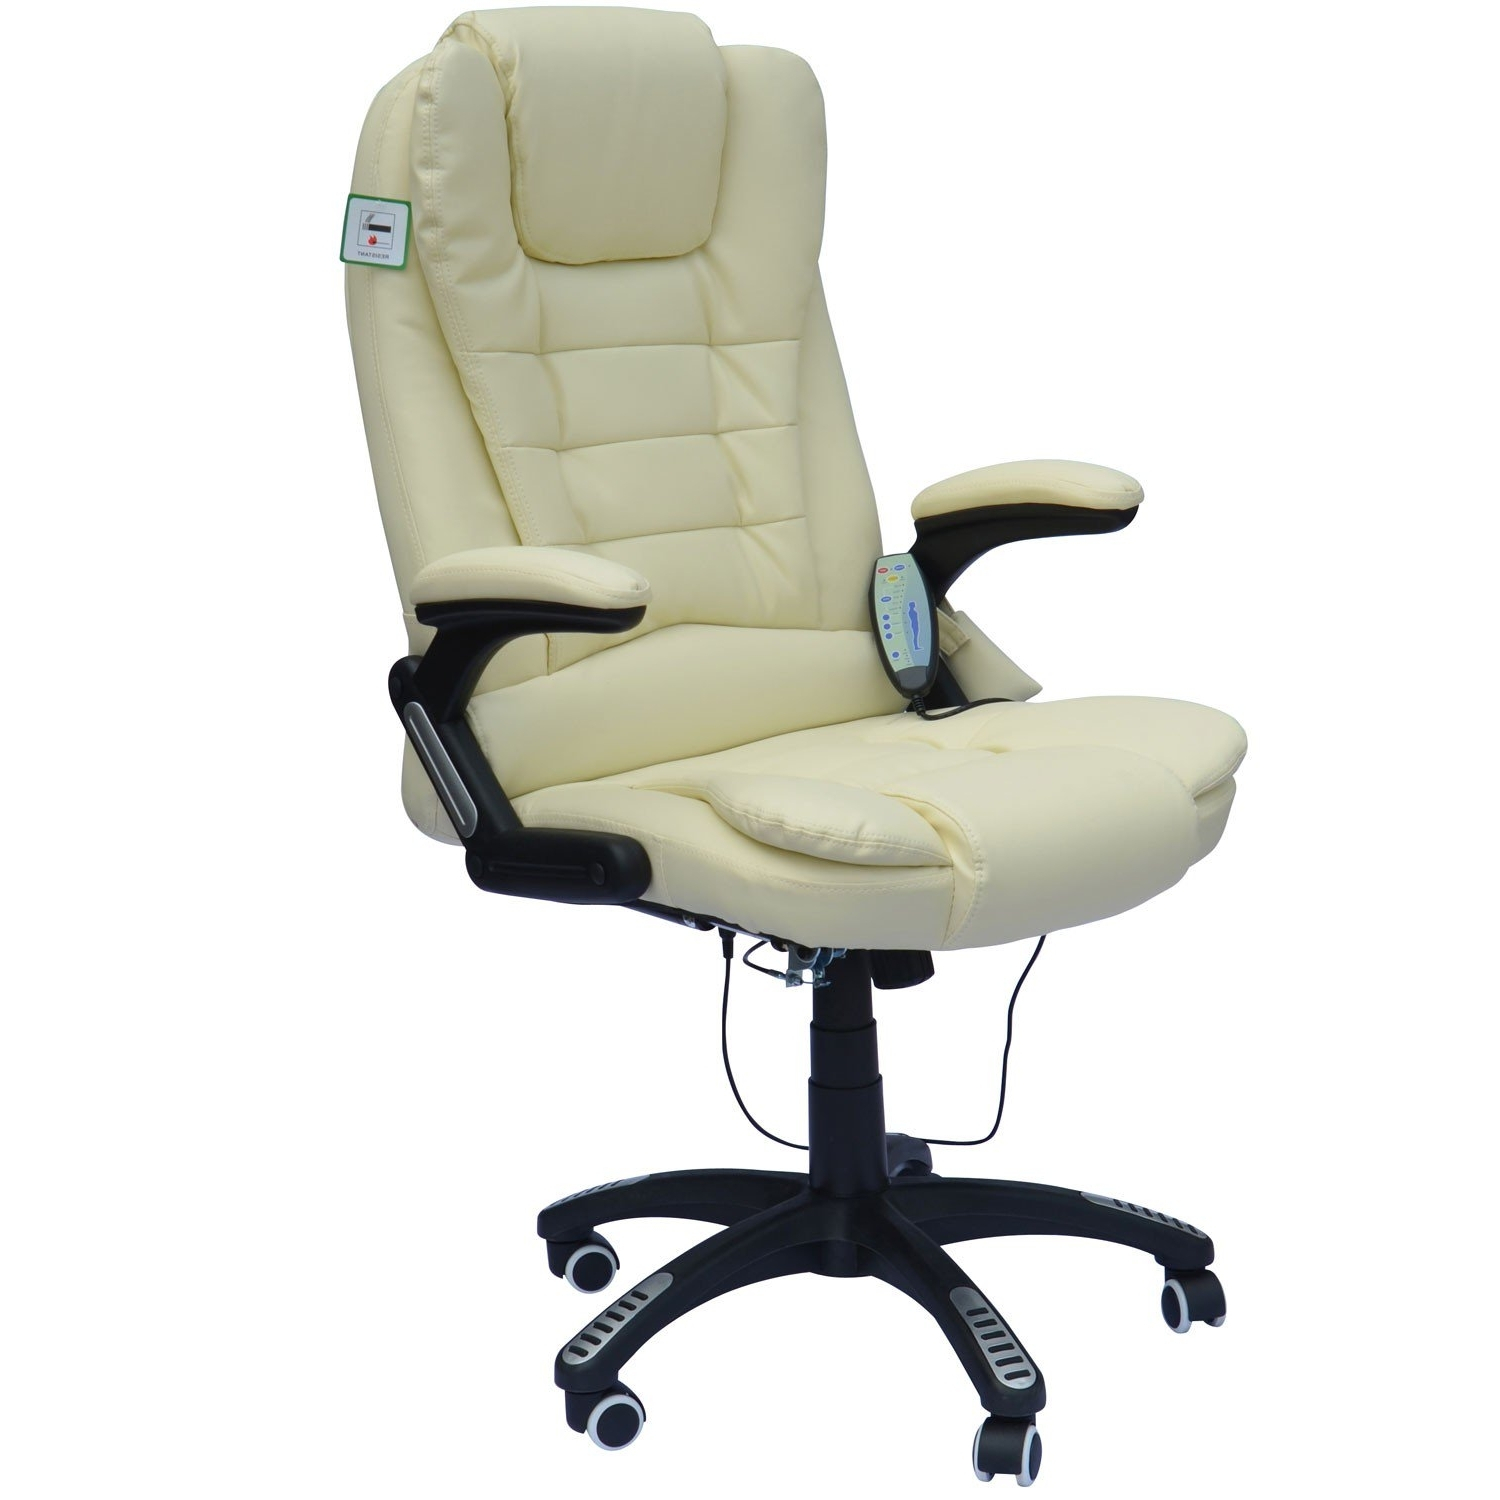 Executive Office Chairs With Massage/heat Pertaining To Most Up To Date Homcom Massage Chair Office Computer Executive Ergonomic Heated (Gallery 10 of 20)